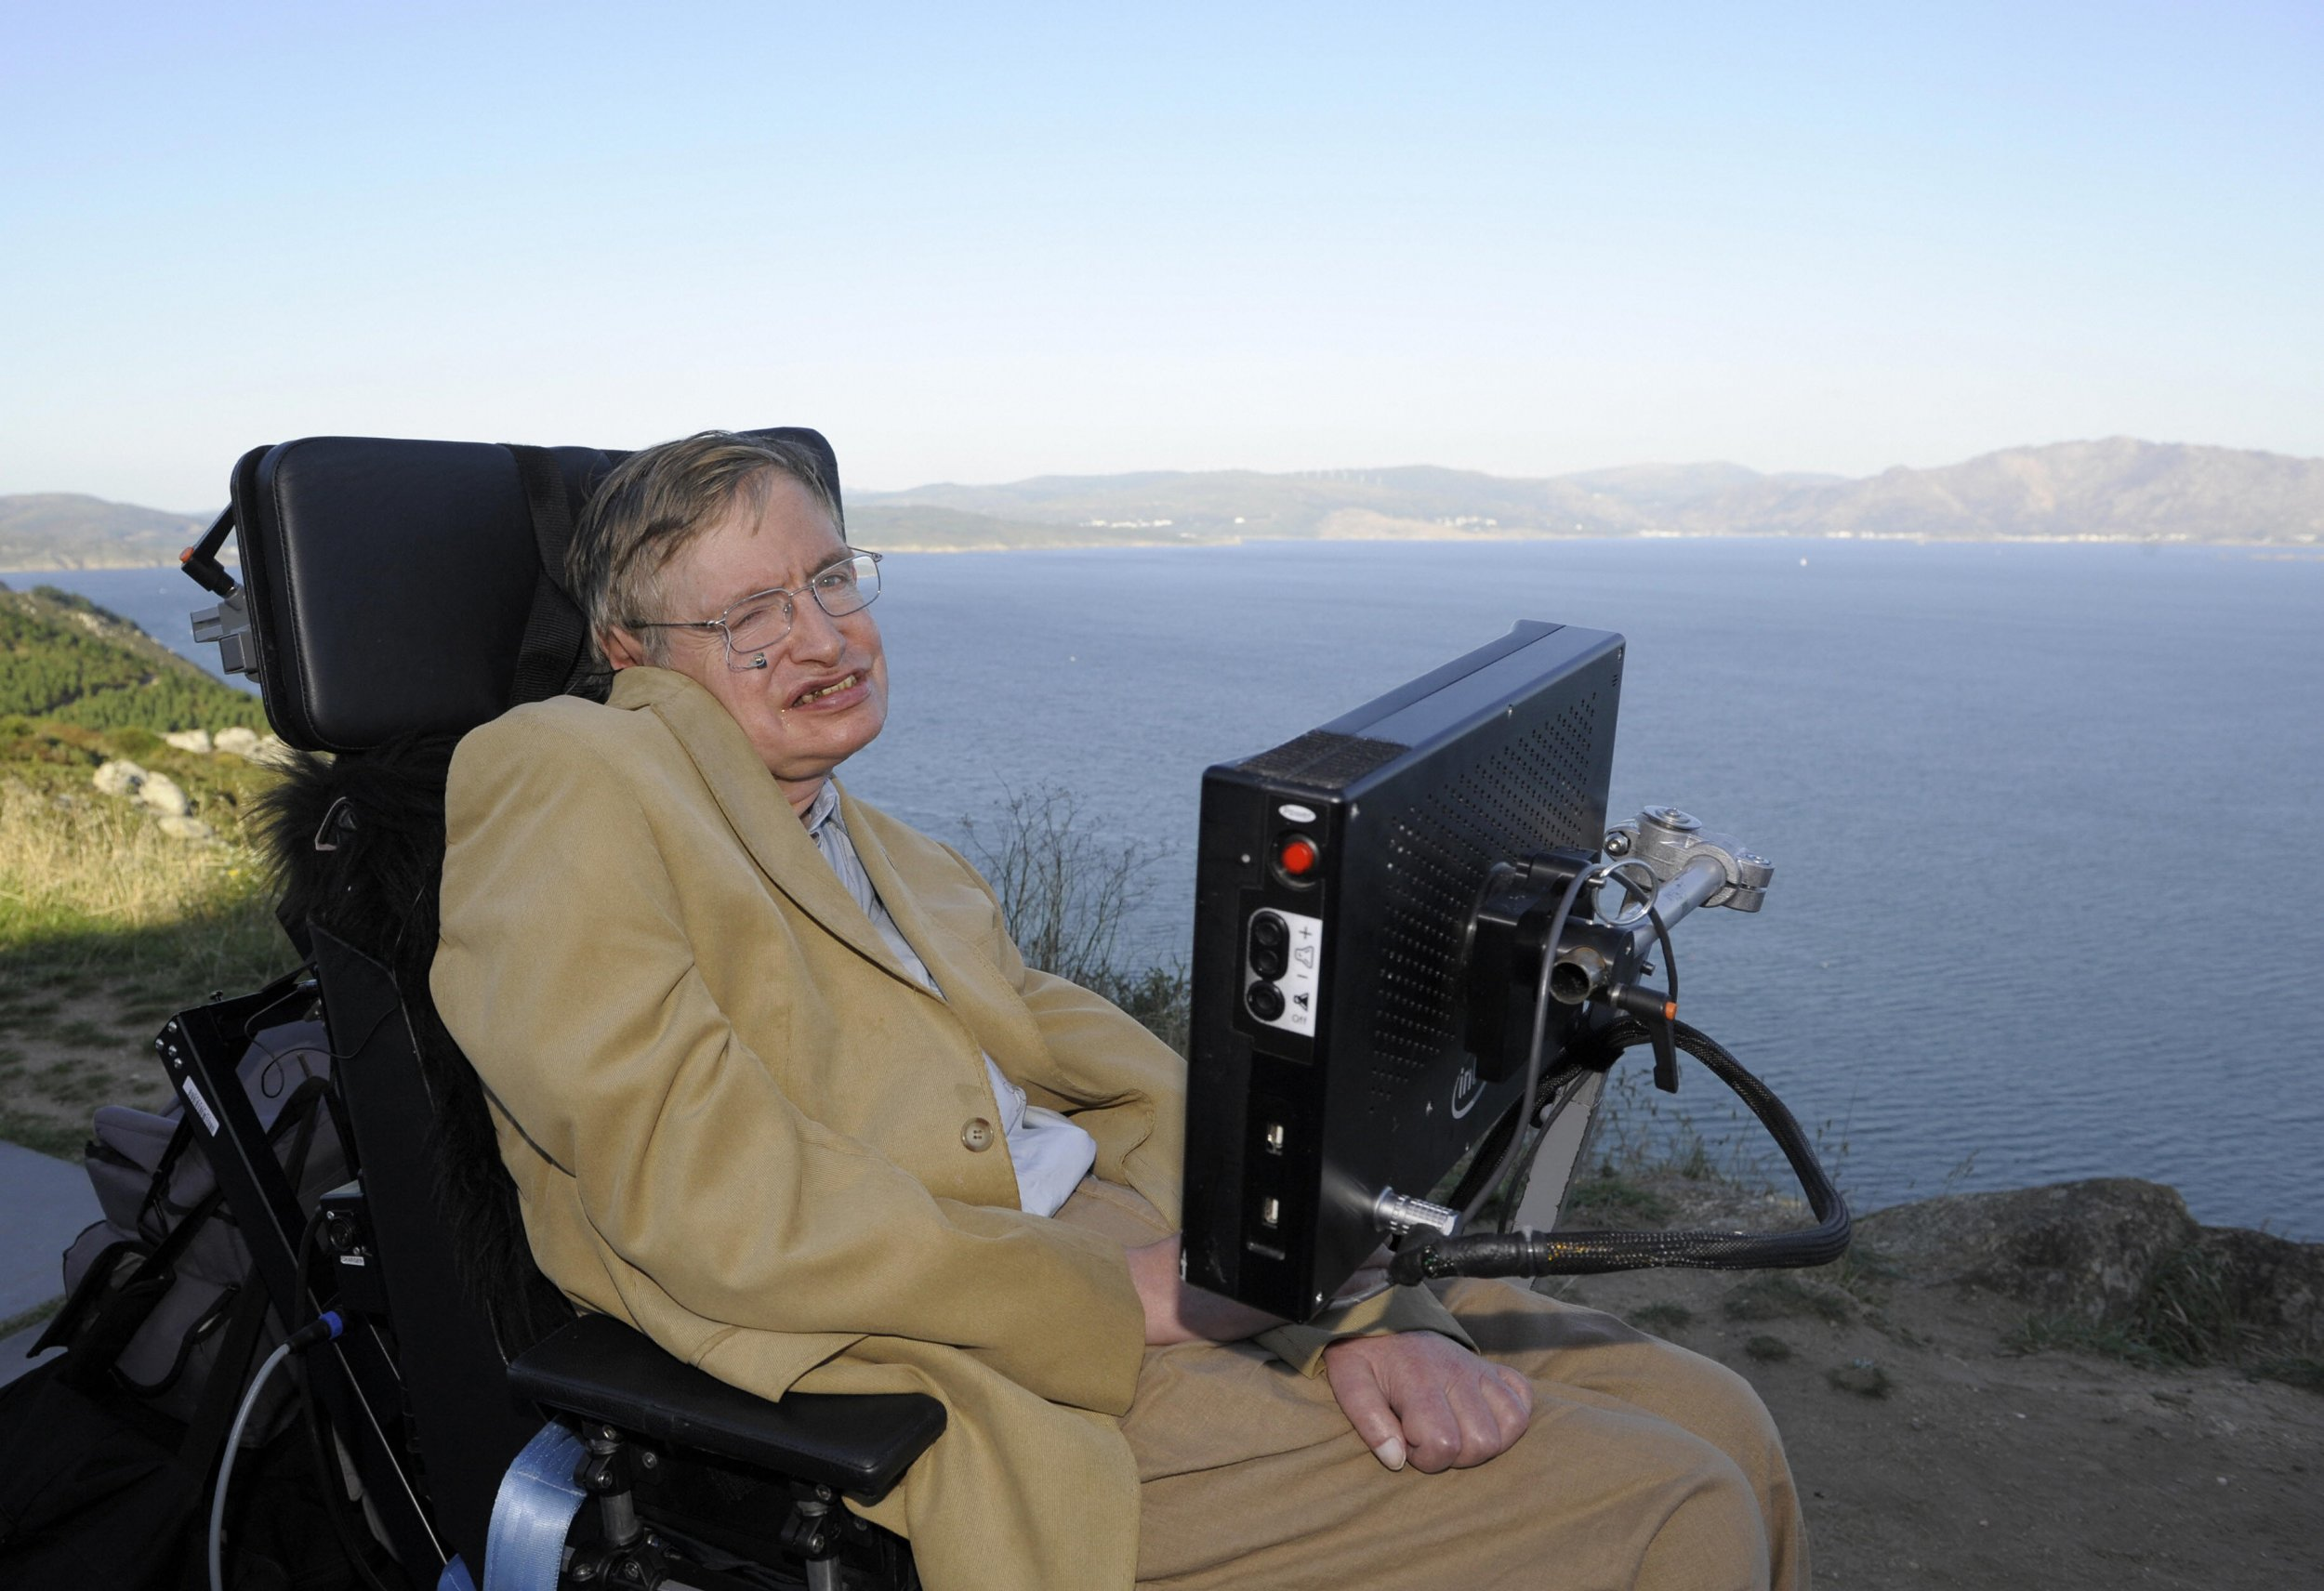 Stephen Hawking Advocated For Wealth Redistribution To Prevent Mass